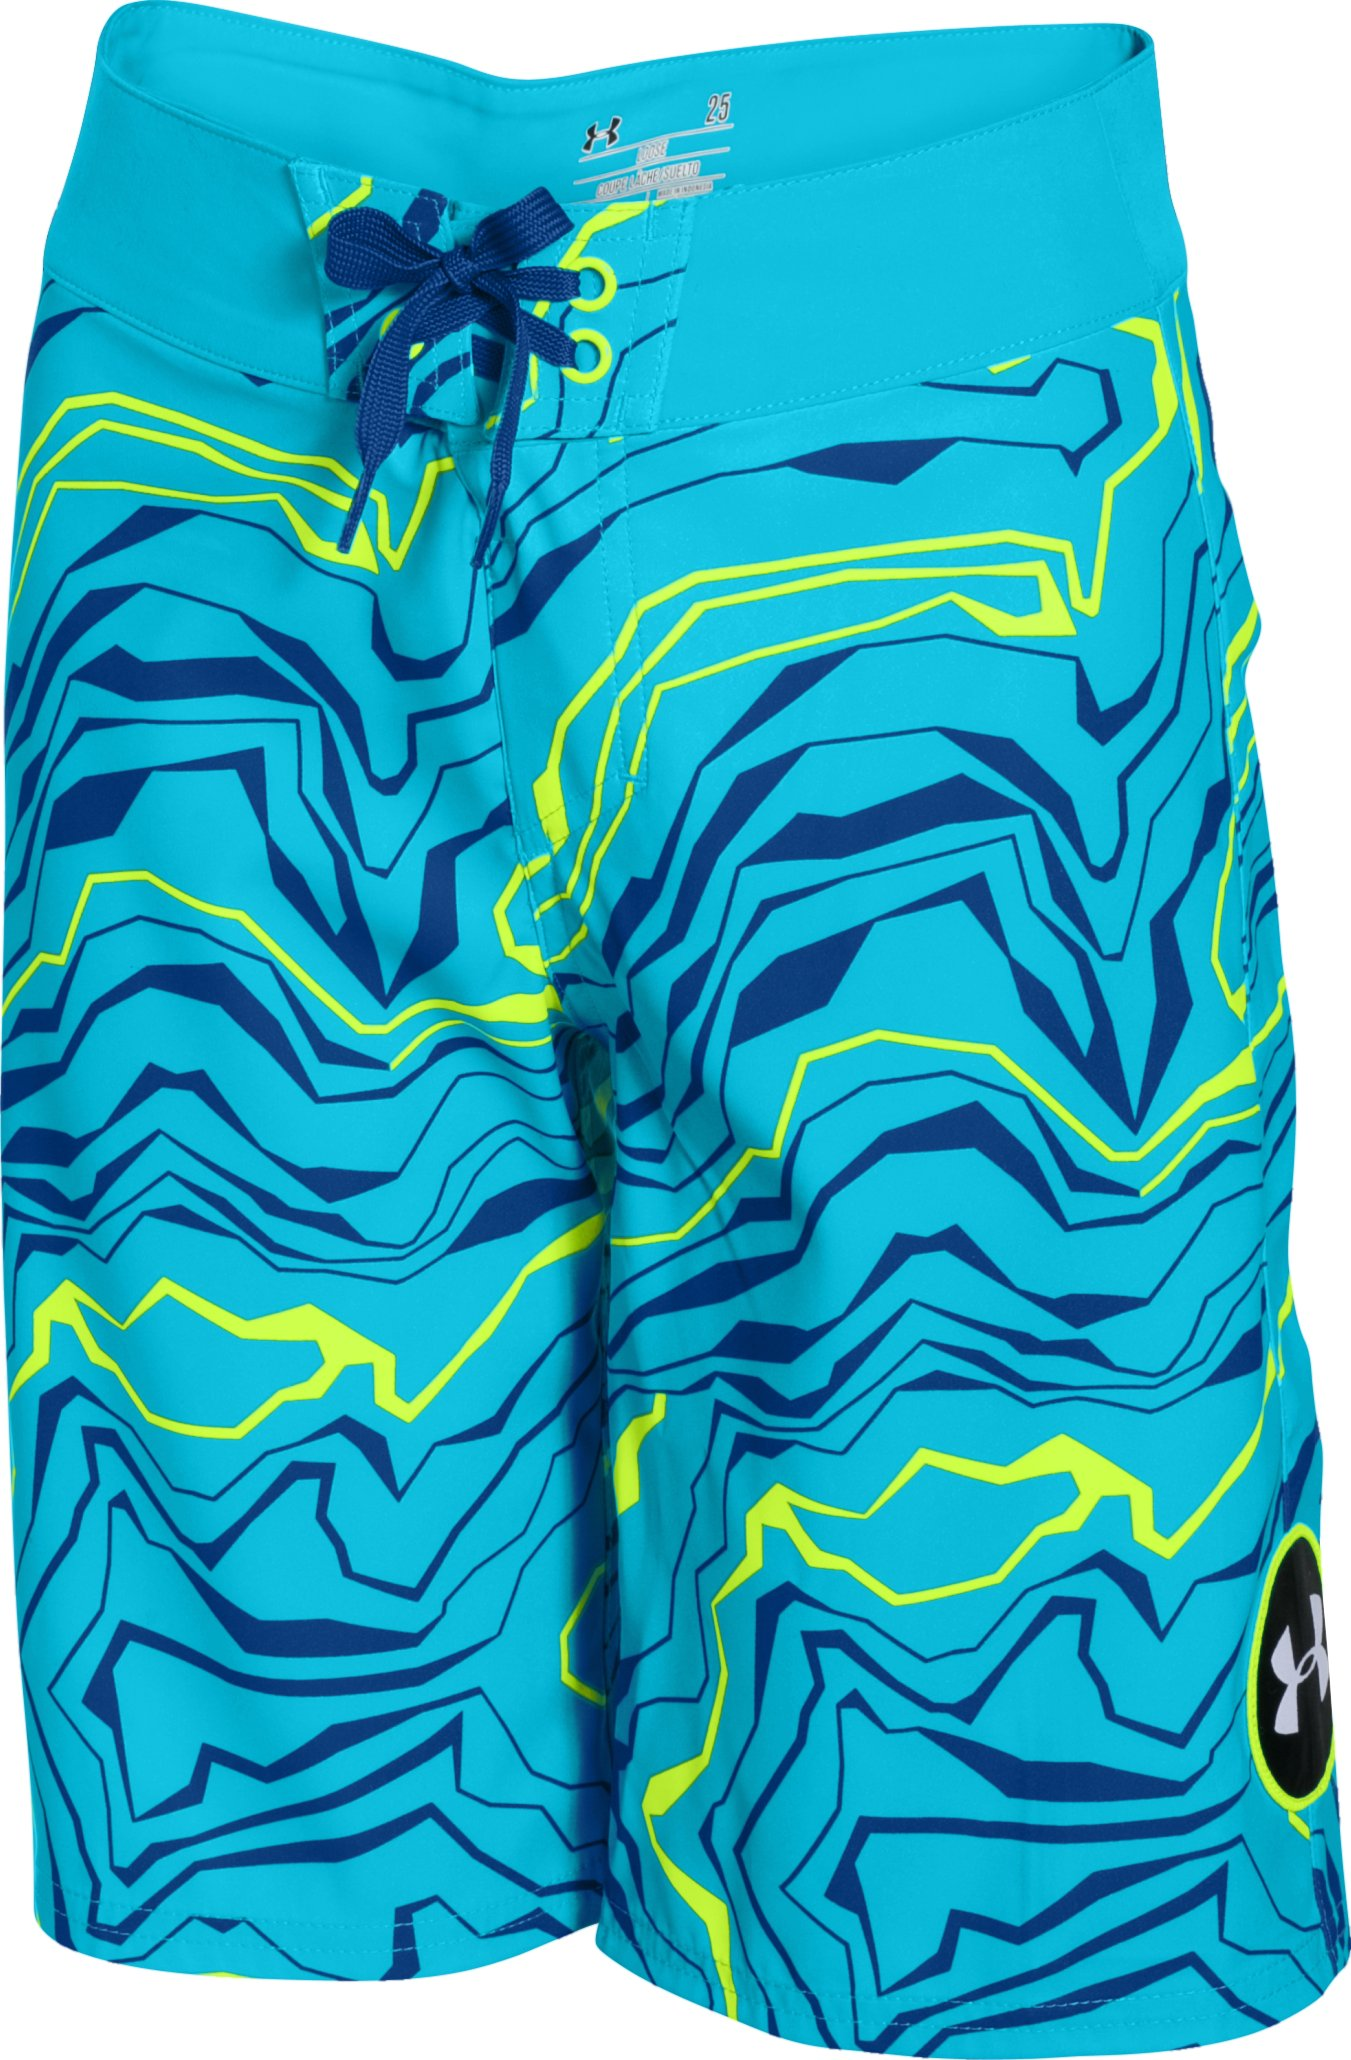 Boys' UA Barrel Boardshorts, MERIDIAN BLUE